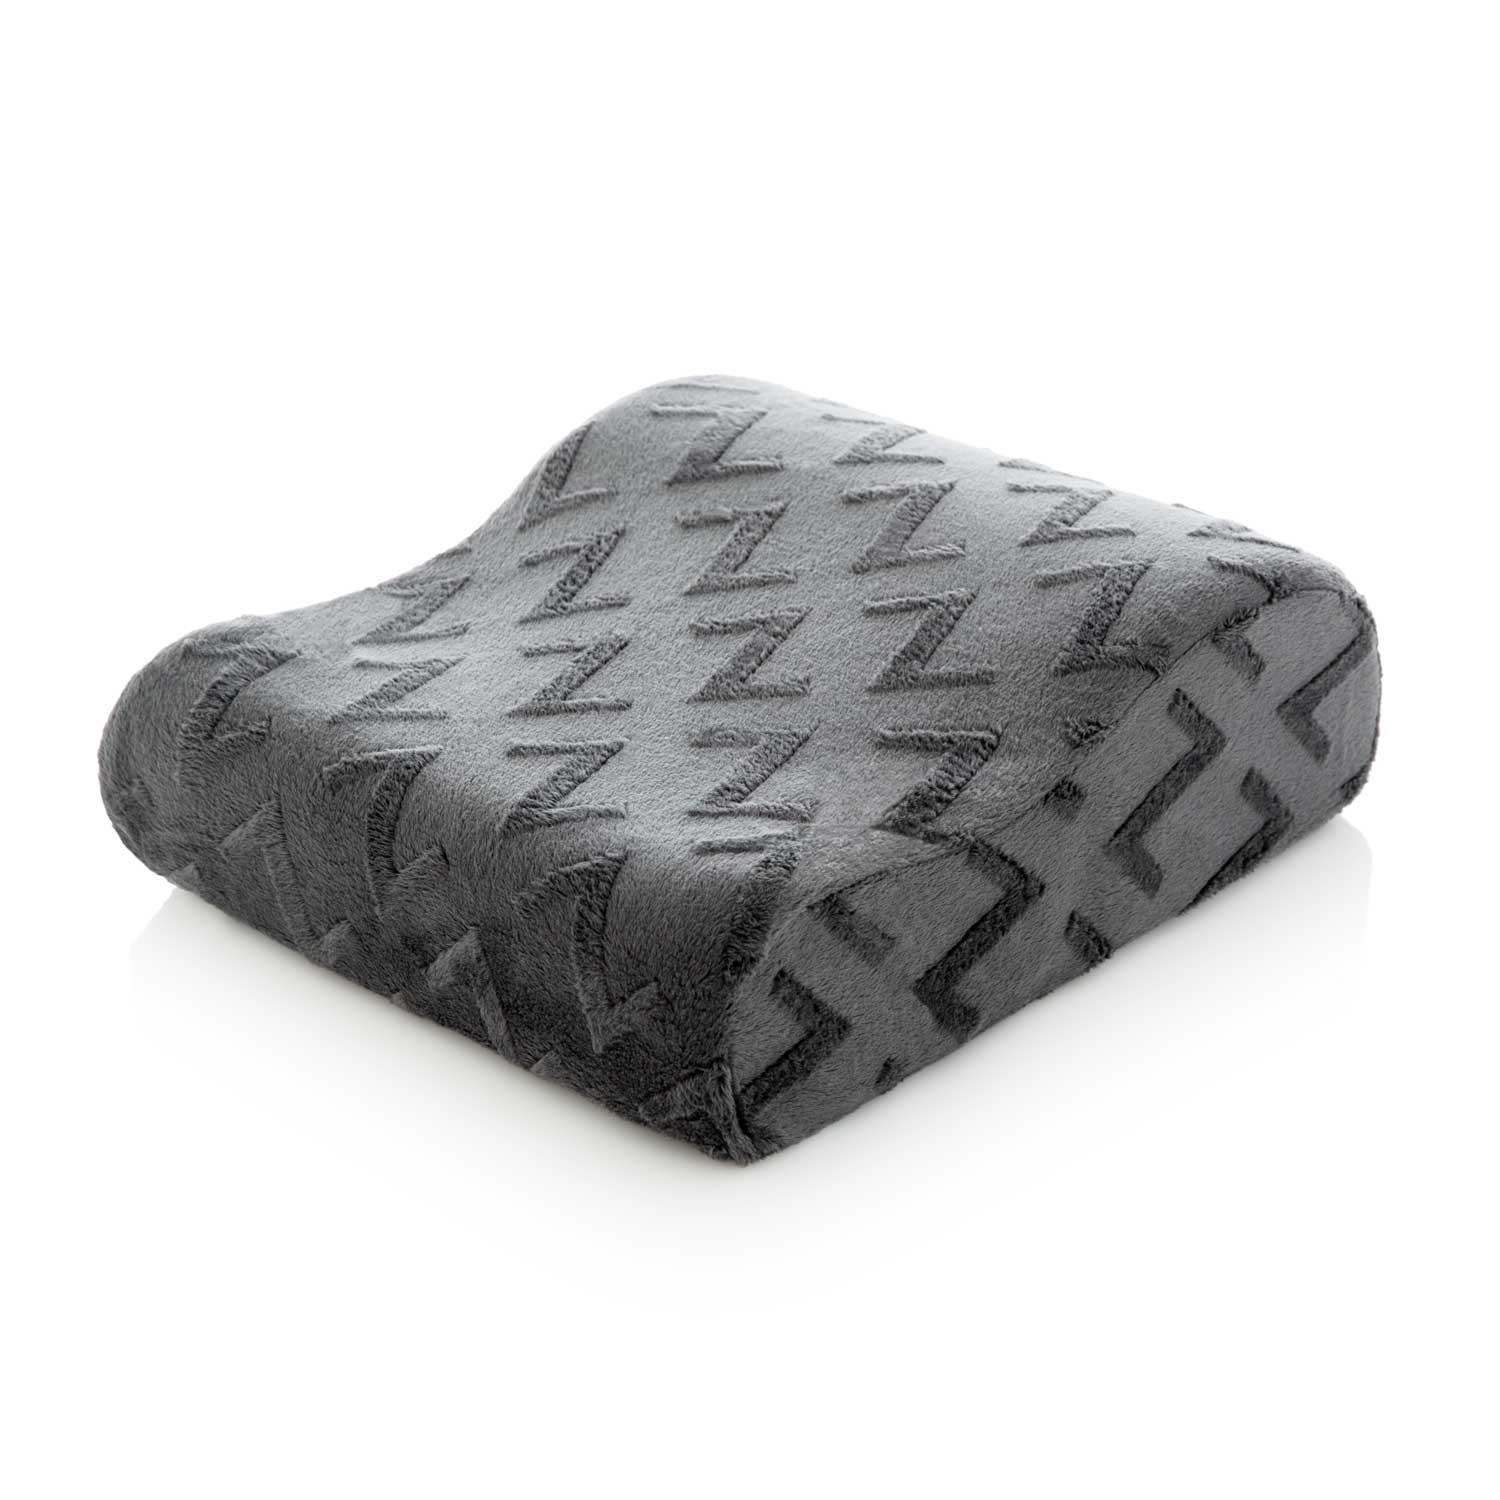 Travel Contour Dough Pillow - Ultimate Comfort Sleep